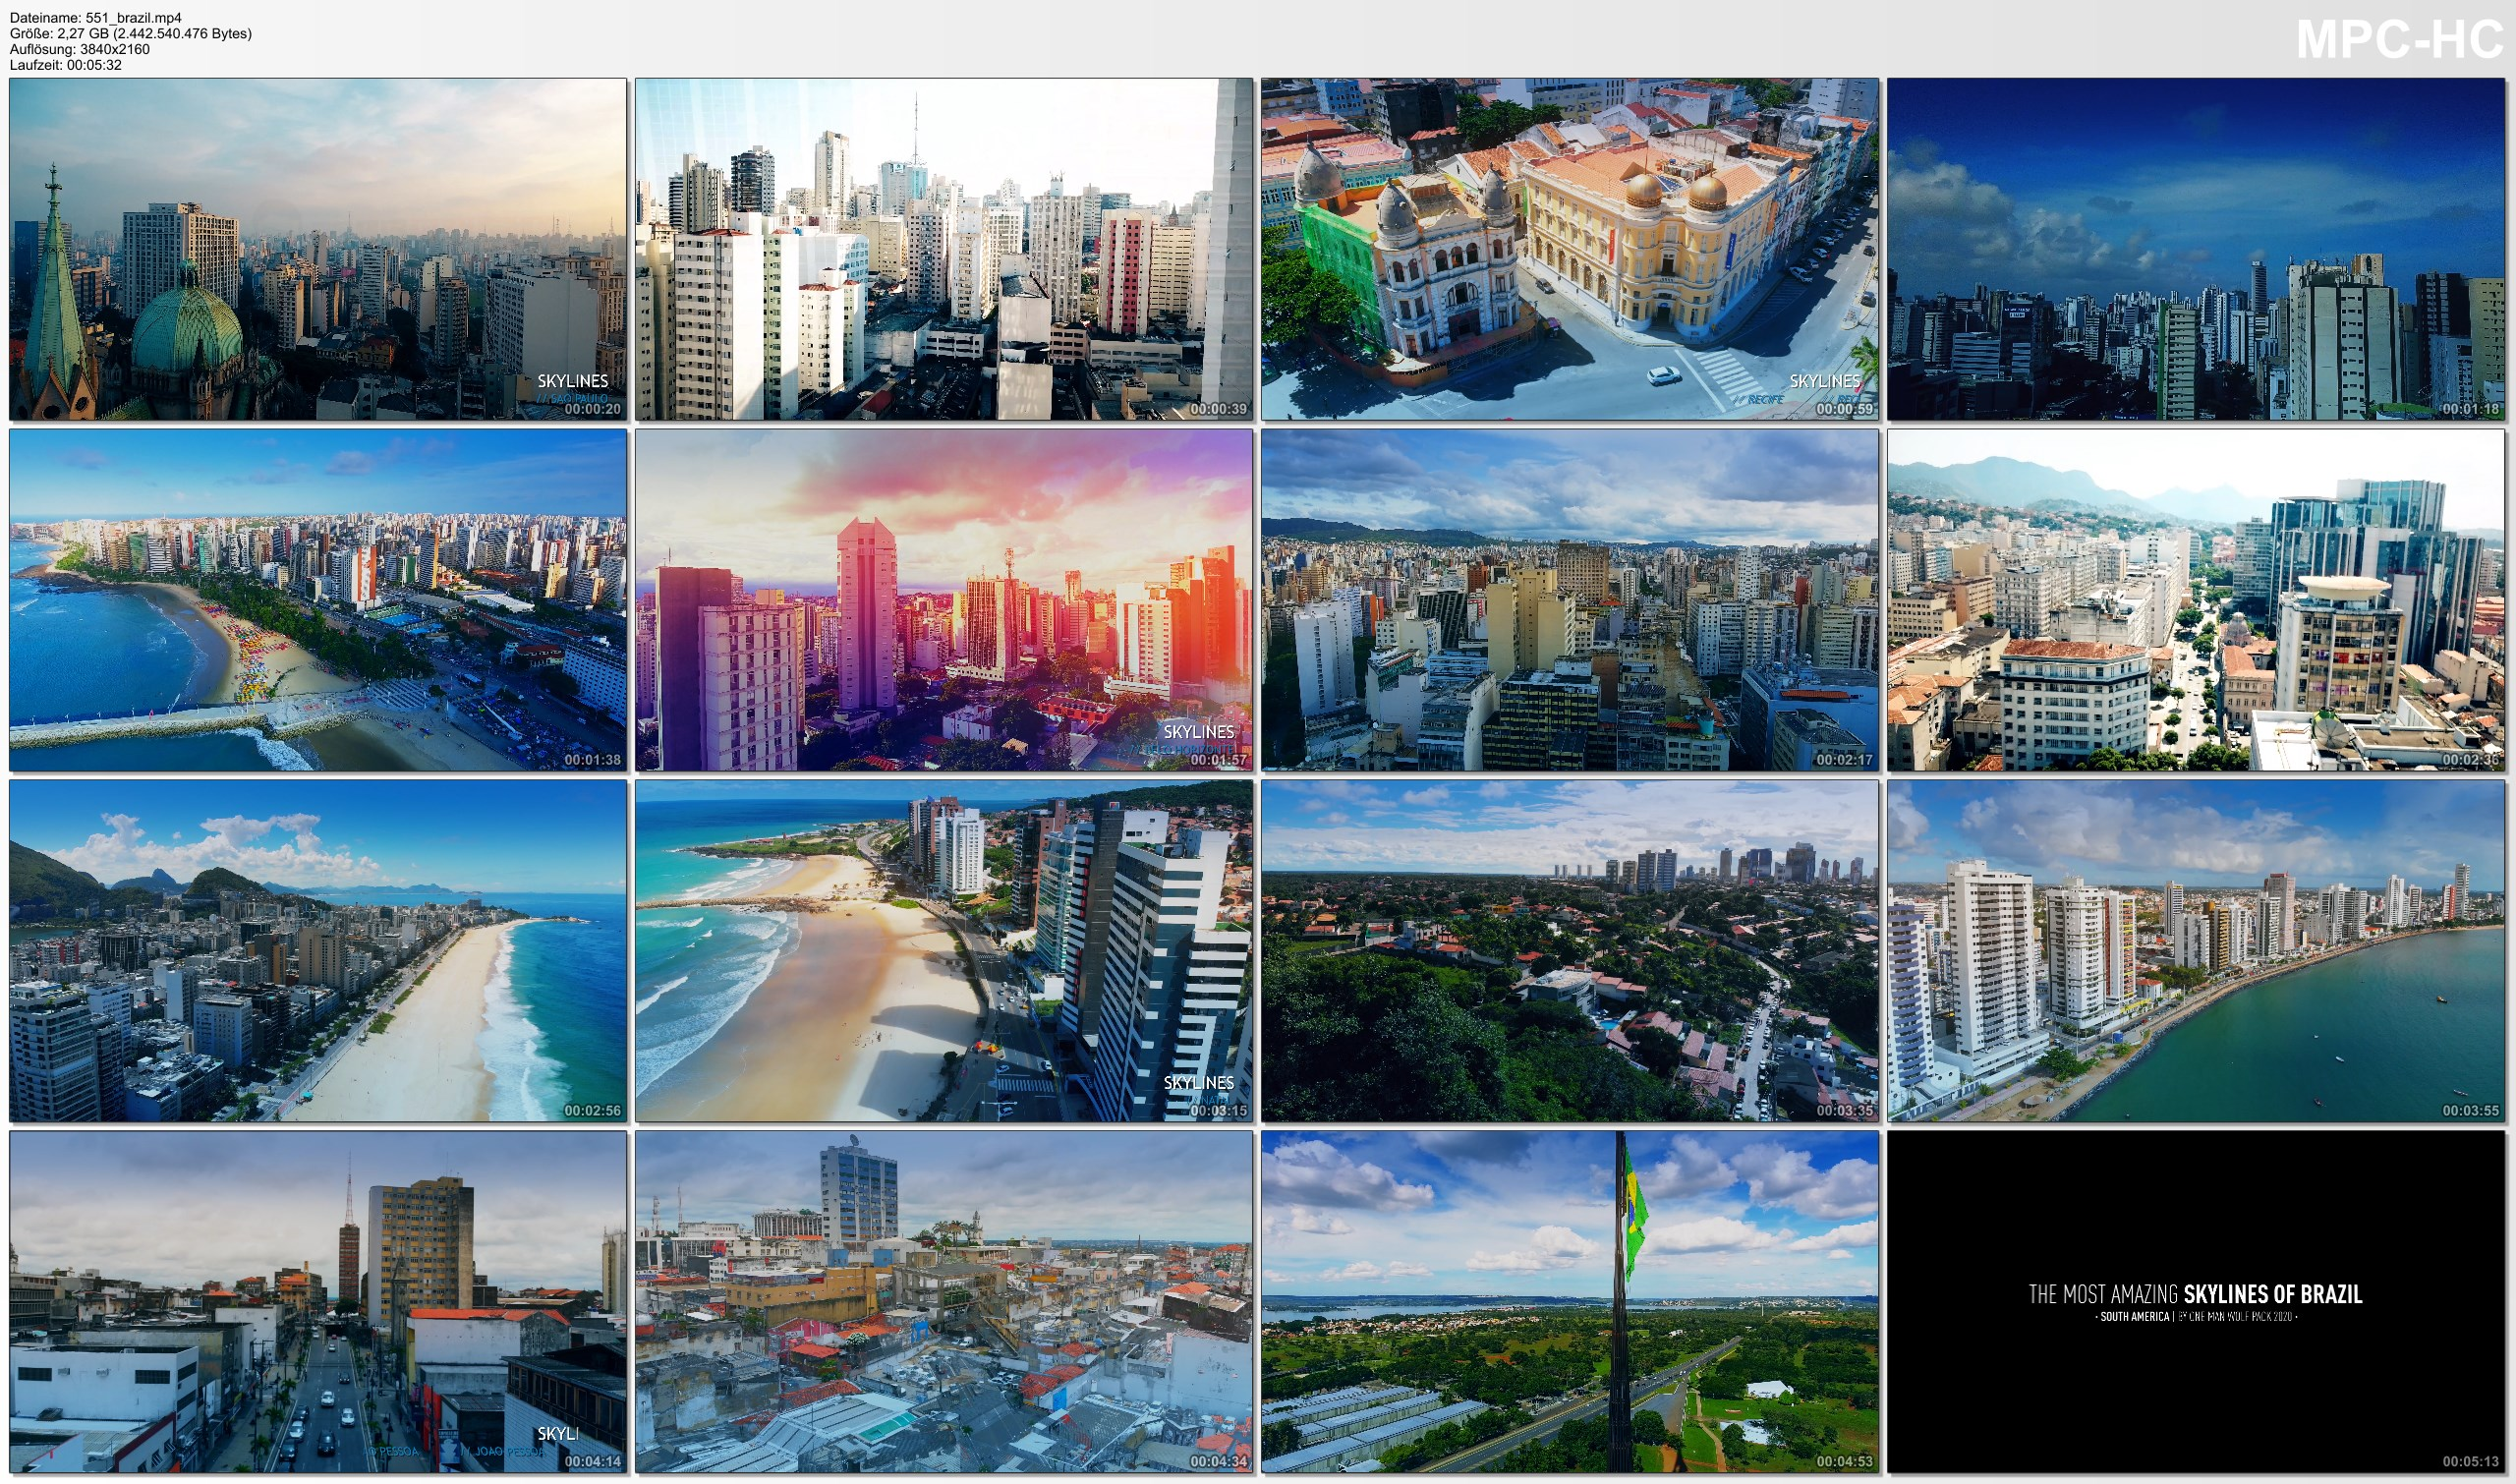 Drone Pictures from Video 【4K】The Most Amazing Skylines of BRAZIL 2020 | Cinematic Wolf Aerial™ Drone Film